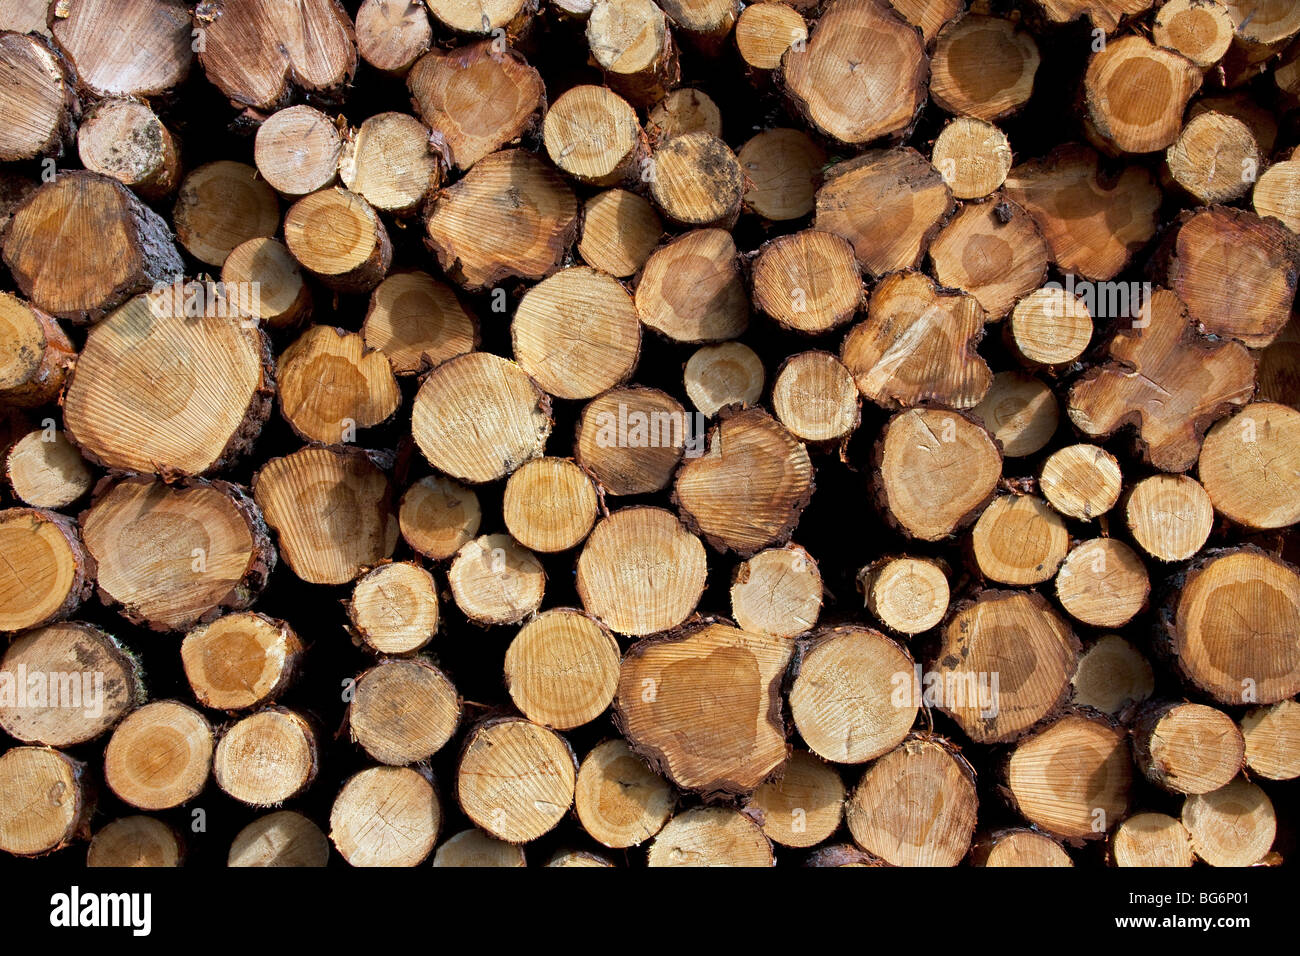 Logging industry showing pile of cut logs / trees / timber from pine forest - Stock Image